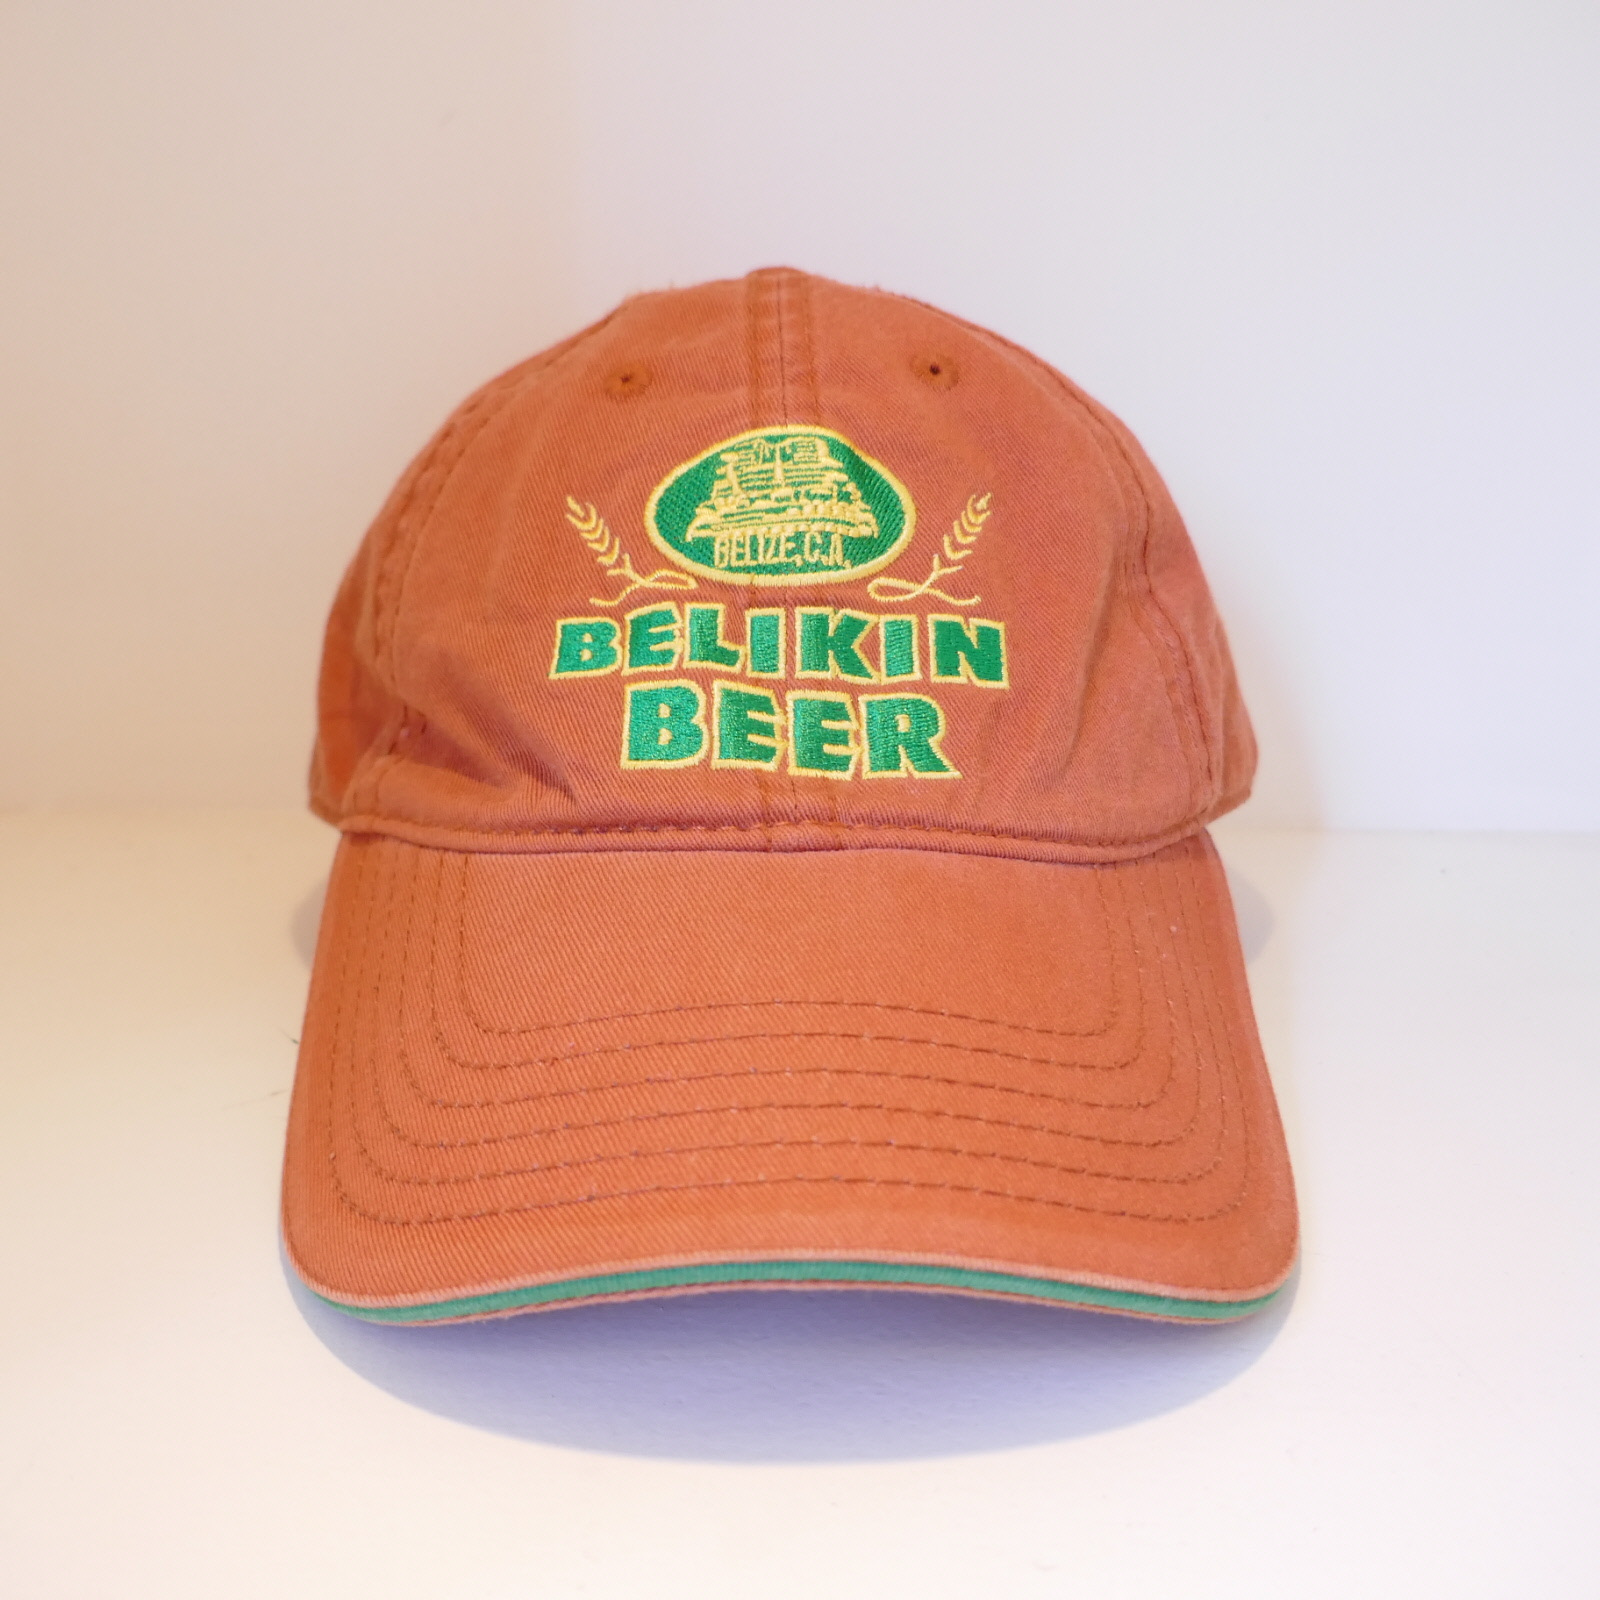 USED BELIKIN BEER CAP REDBROWN